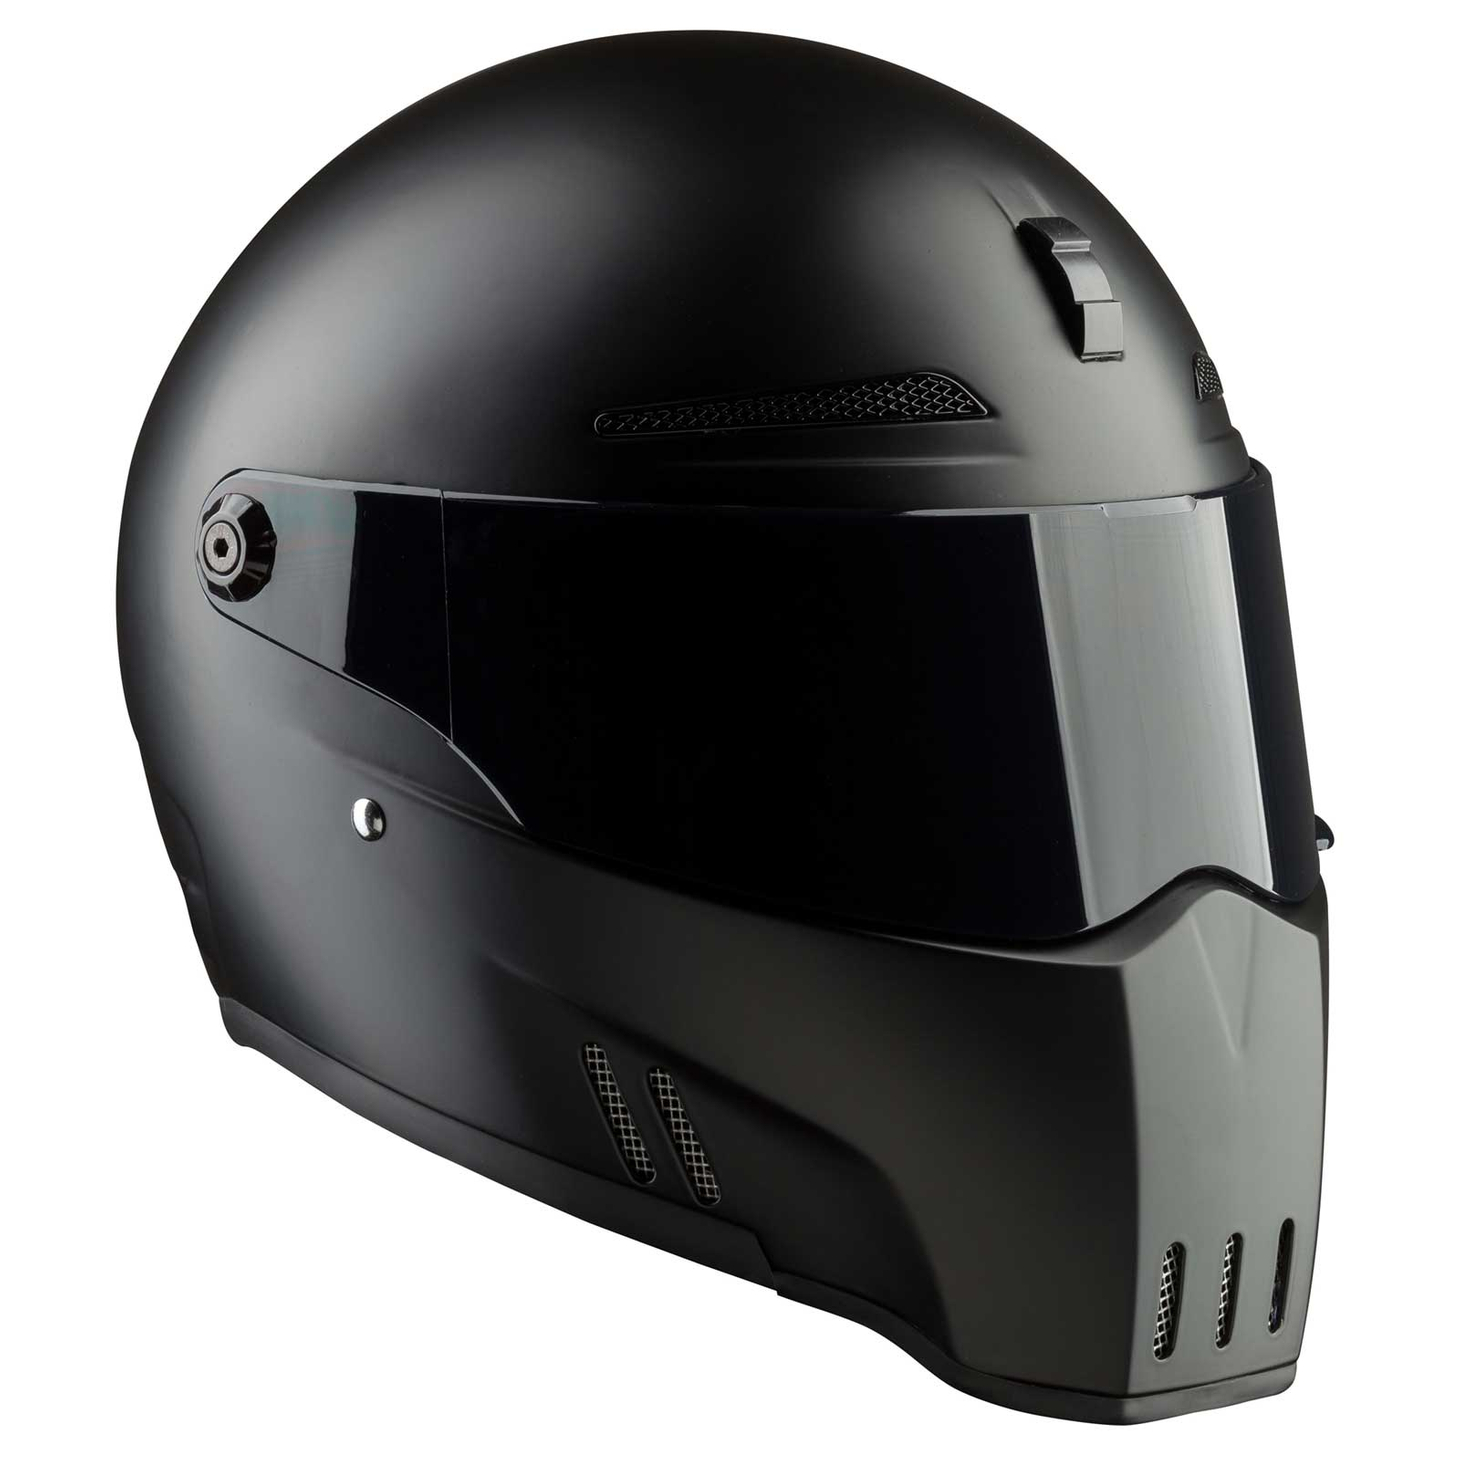 Bandit - New Original Alien II - Motorcycle Helmet - for Streetfighter – Picture 2